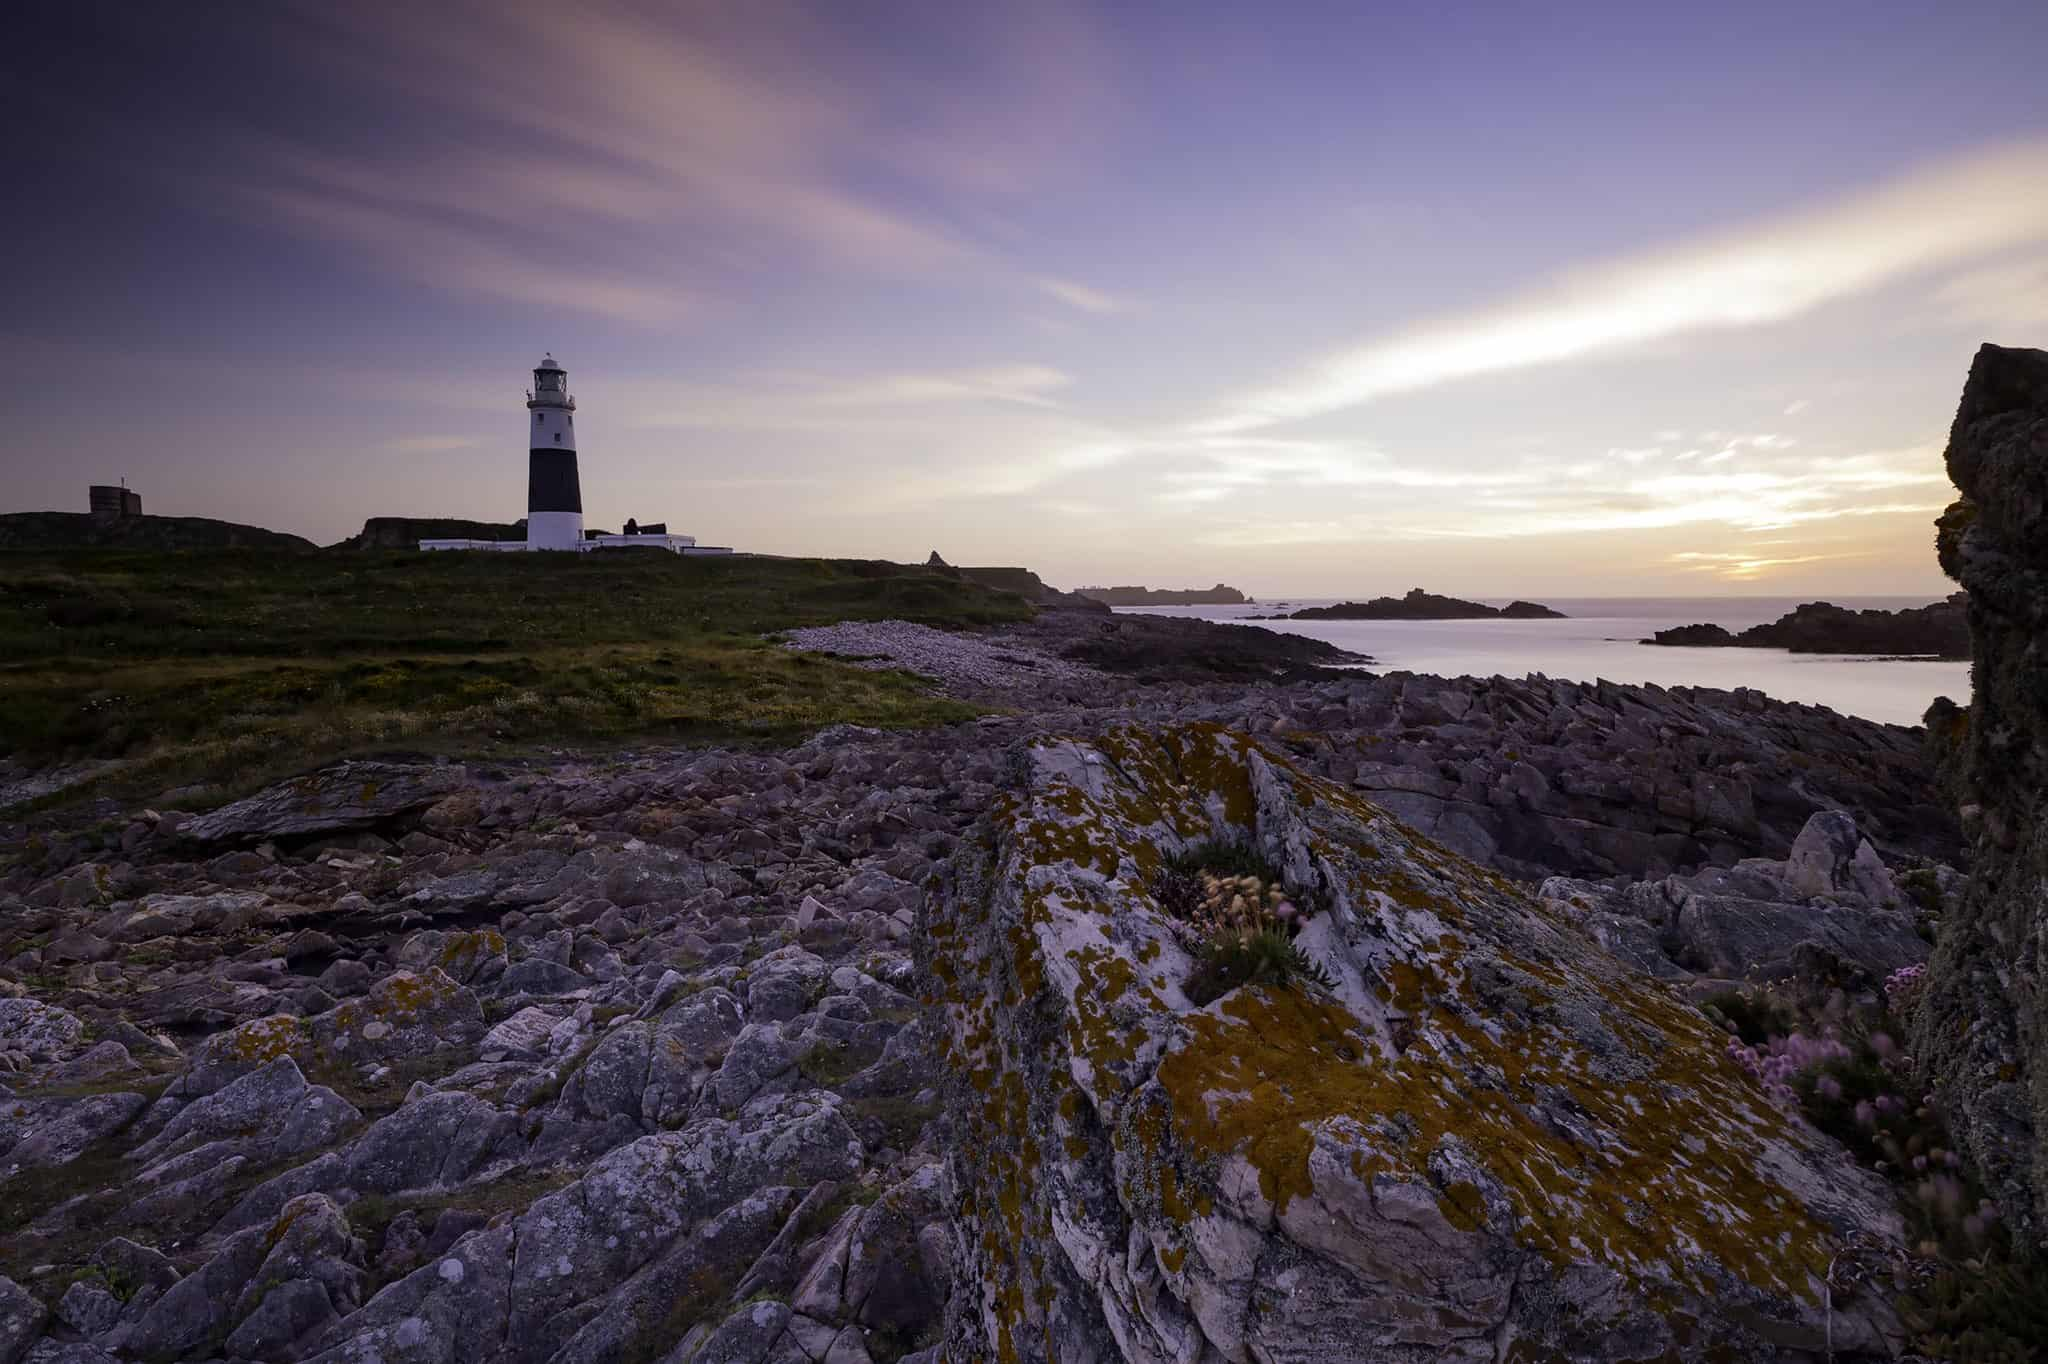 Quesnard Lighthouse Alderney Island